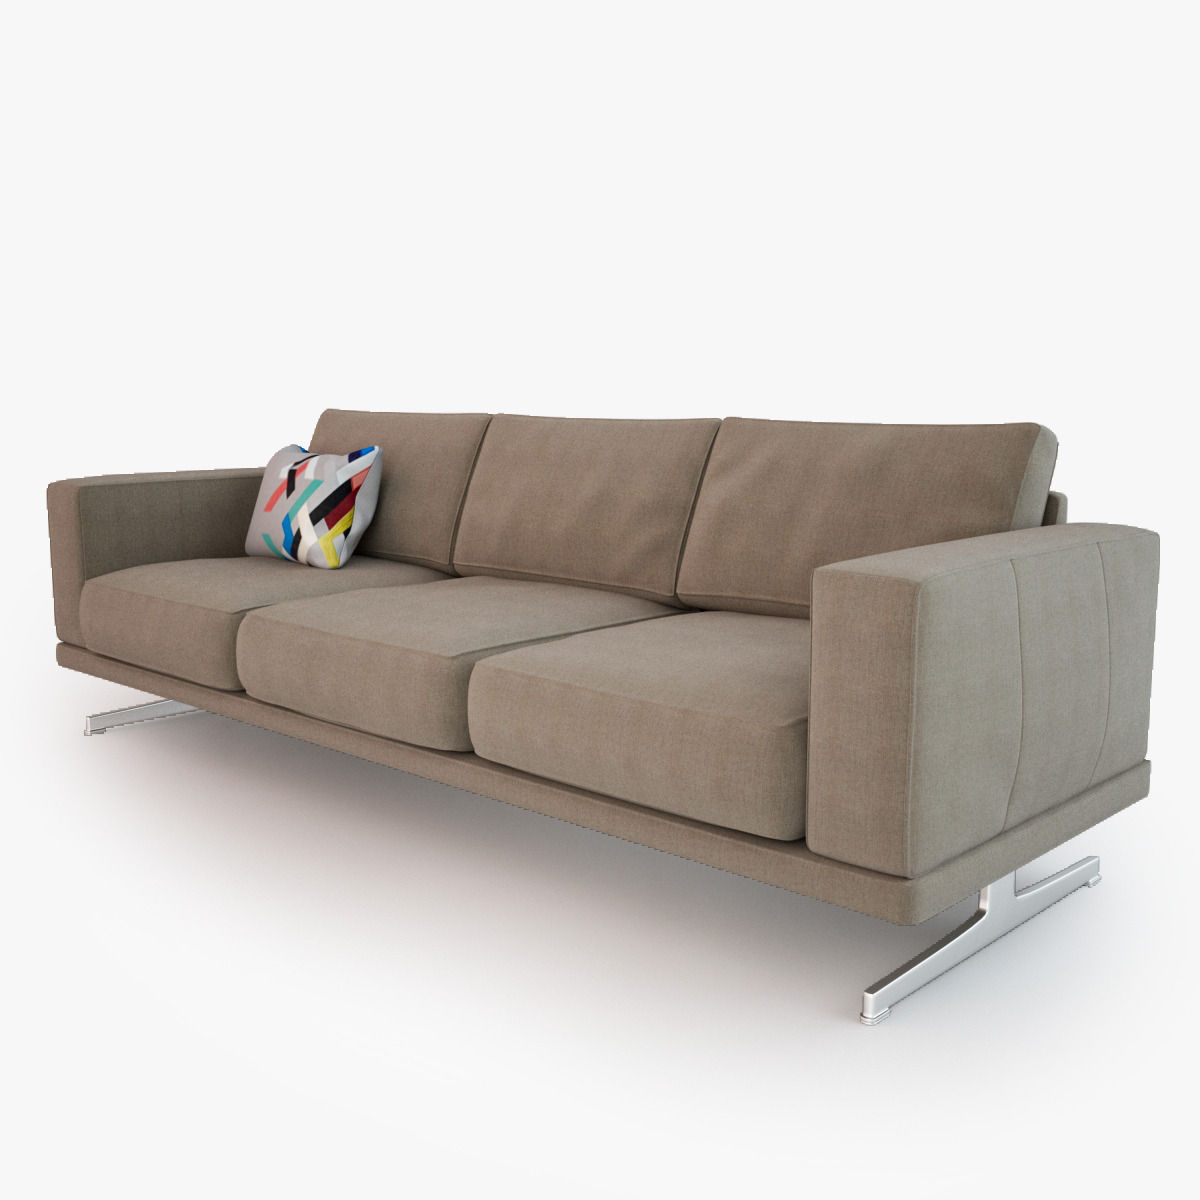 bo concept sofa sofas from the boconcept collection thesofa. Black Bedroom Furniture Sets. Home Design Ideas